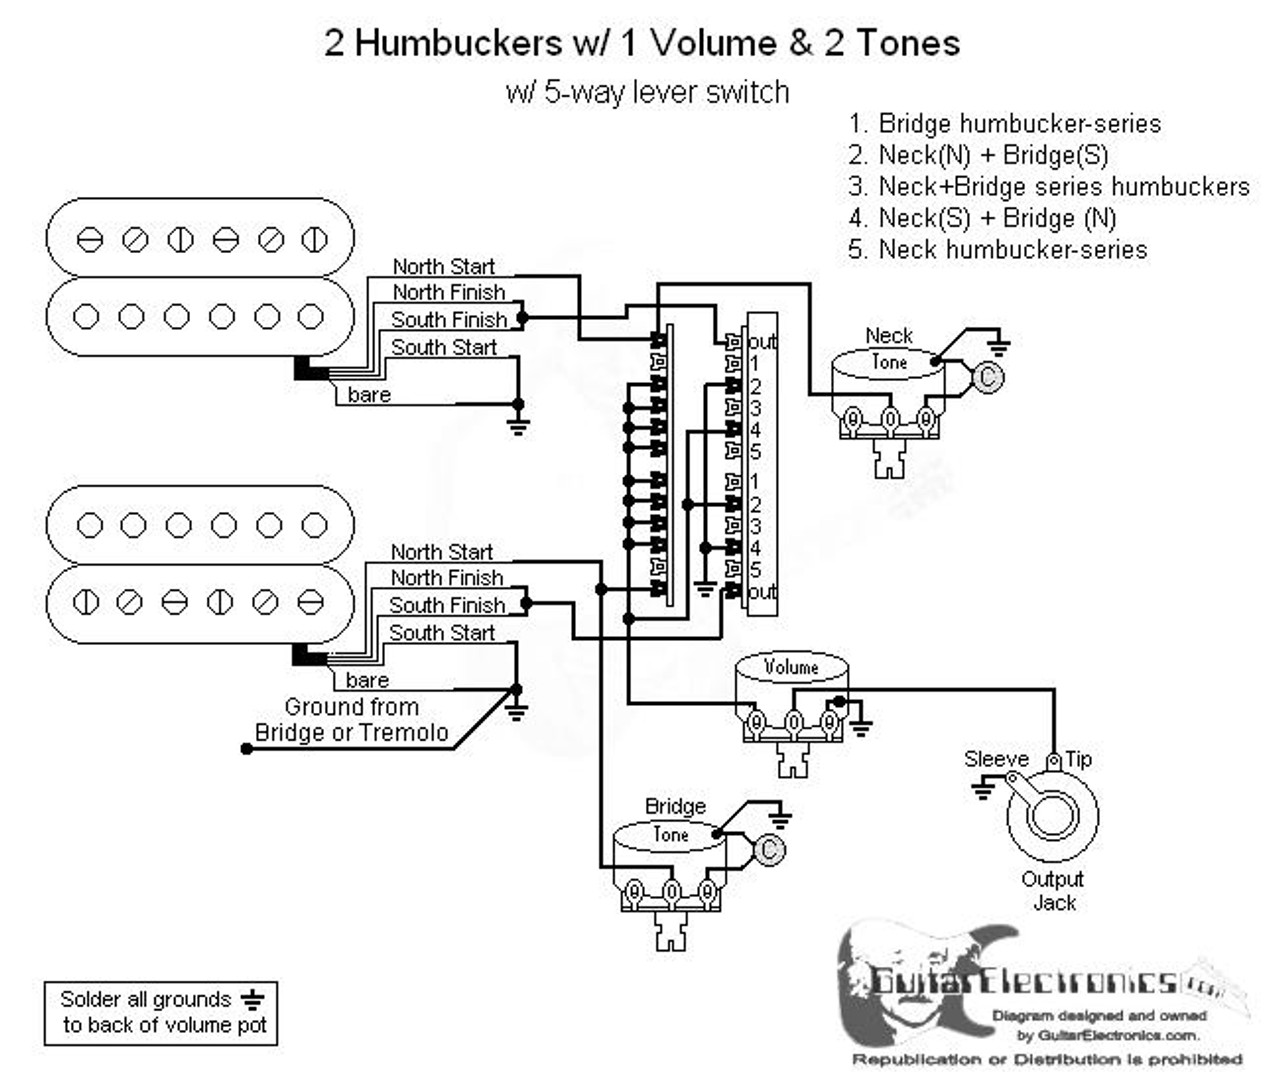 Jazz Bass Wiring Diagram 2 Volume 2 Tone from cdn11.bigcommerce.com